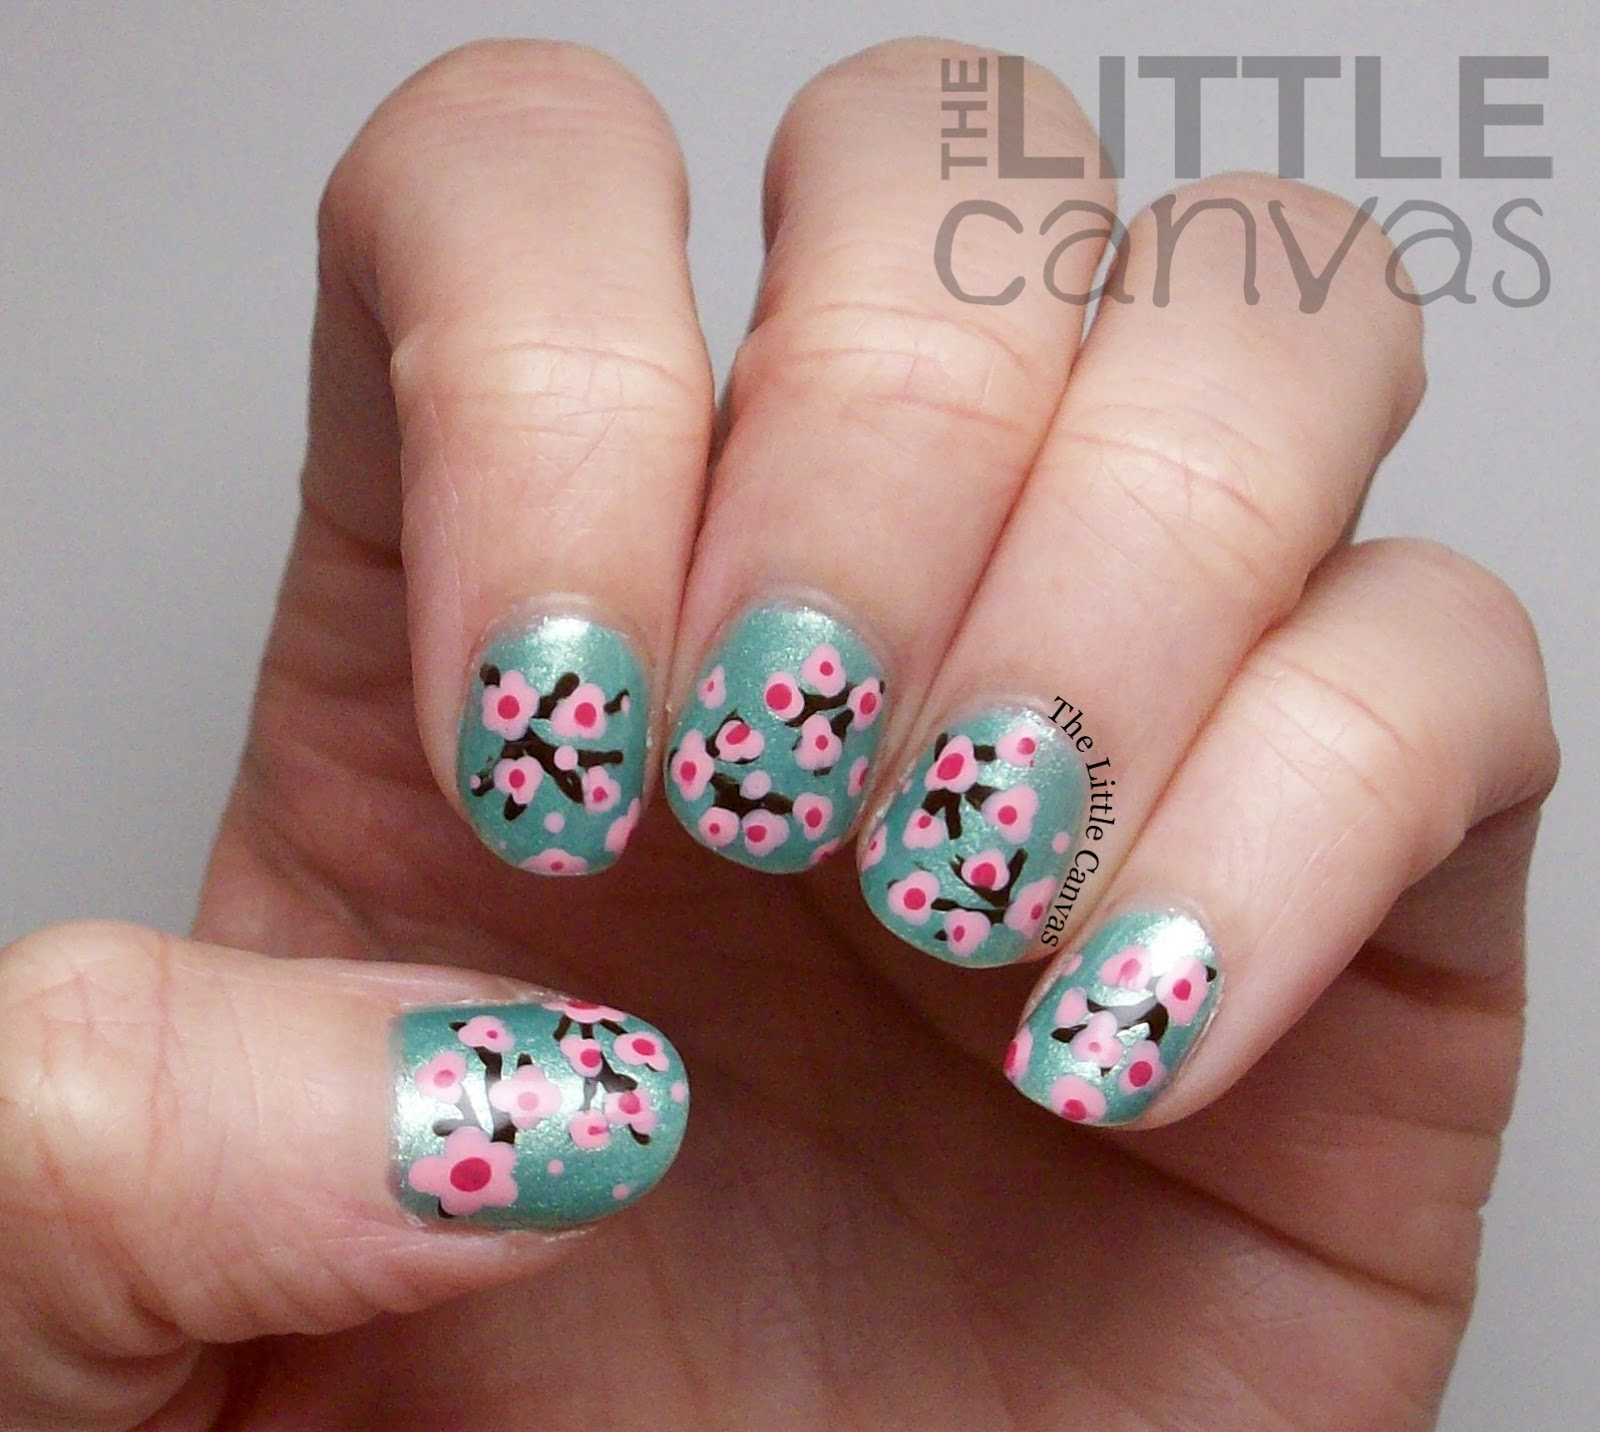 Cherry Blossom Nail Art with Zoya Dillon - The Little Canvas